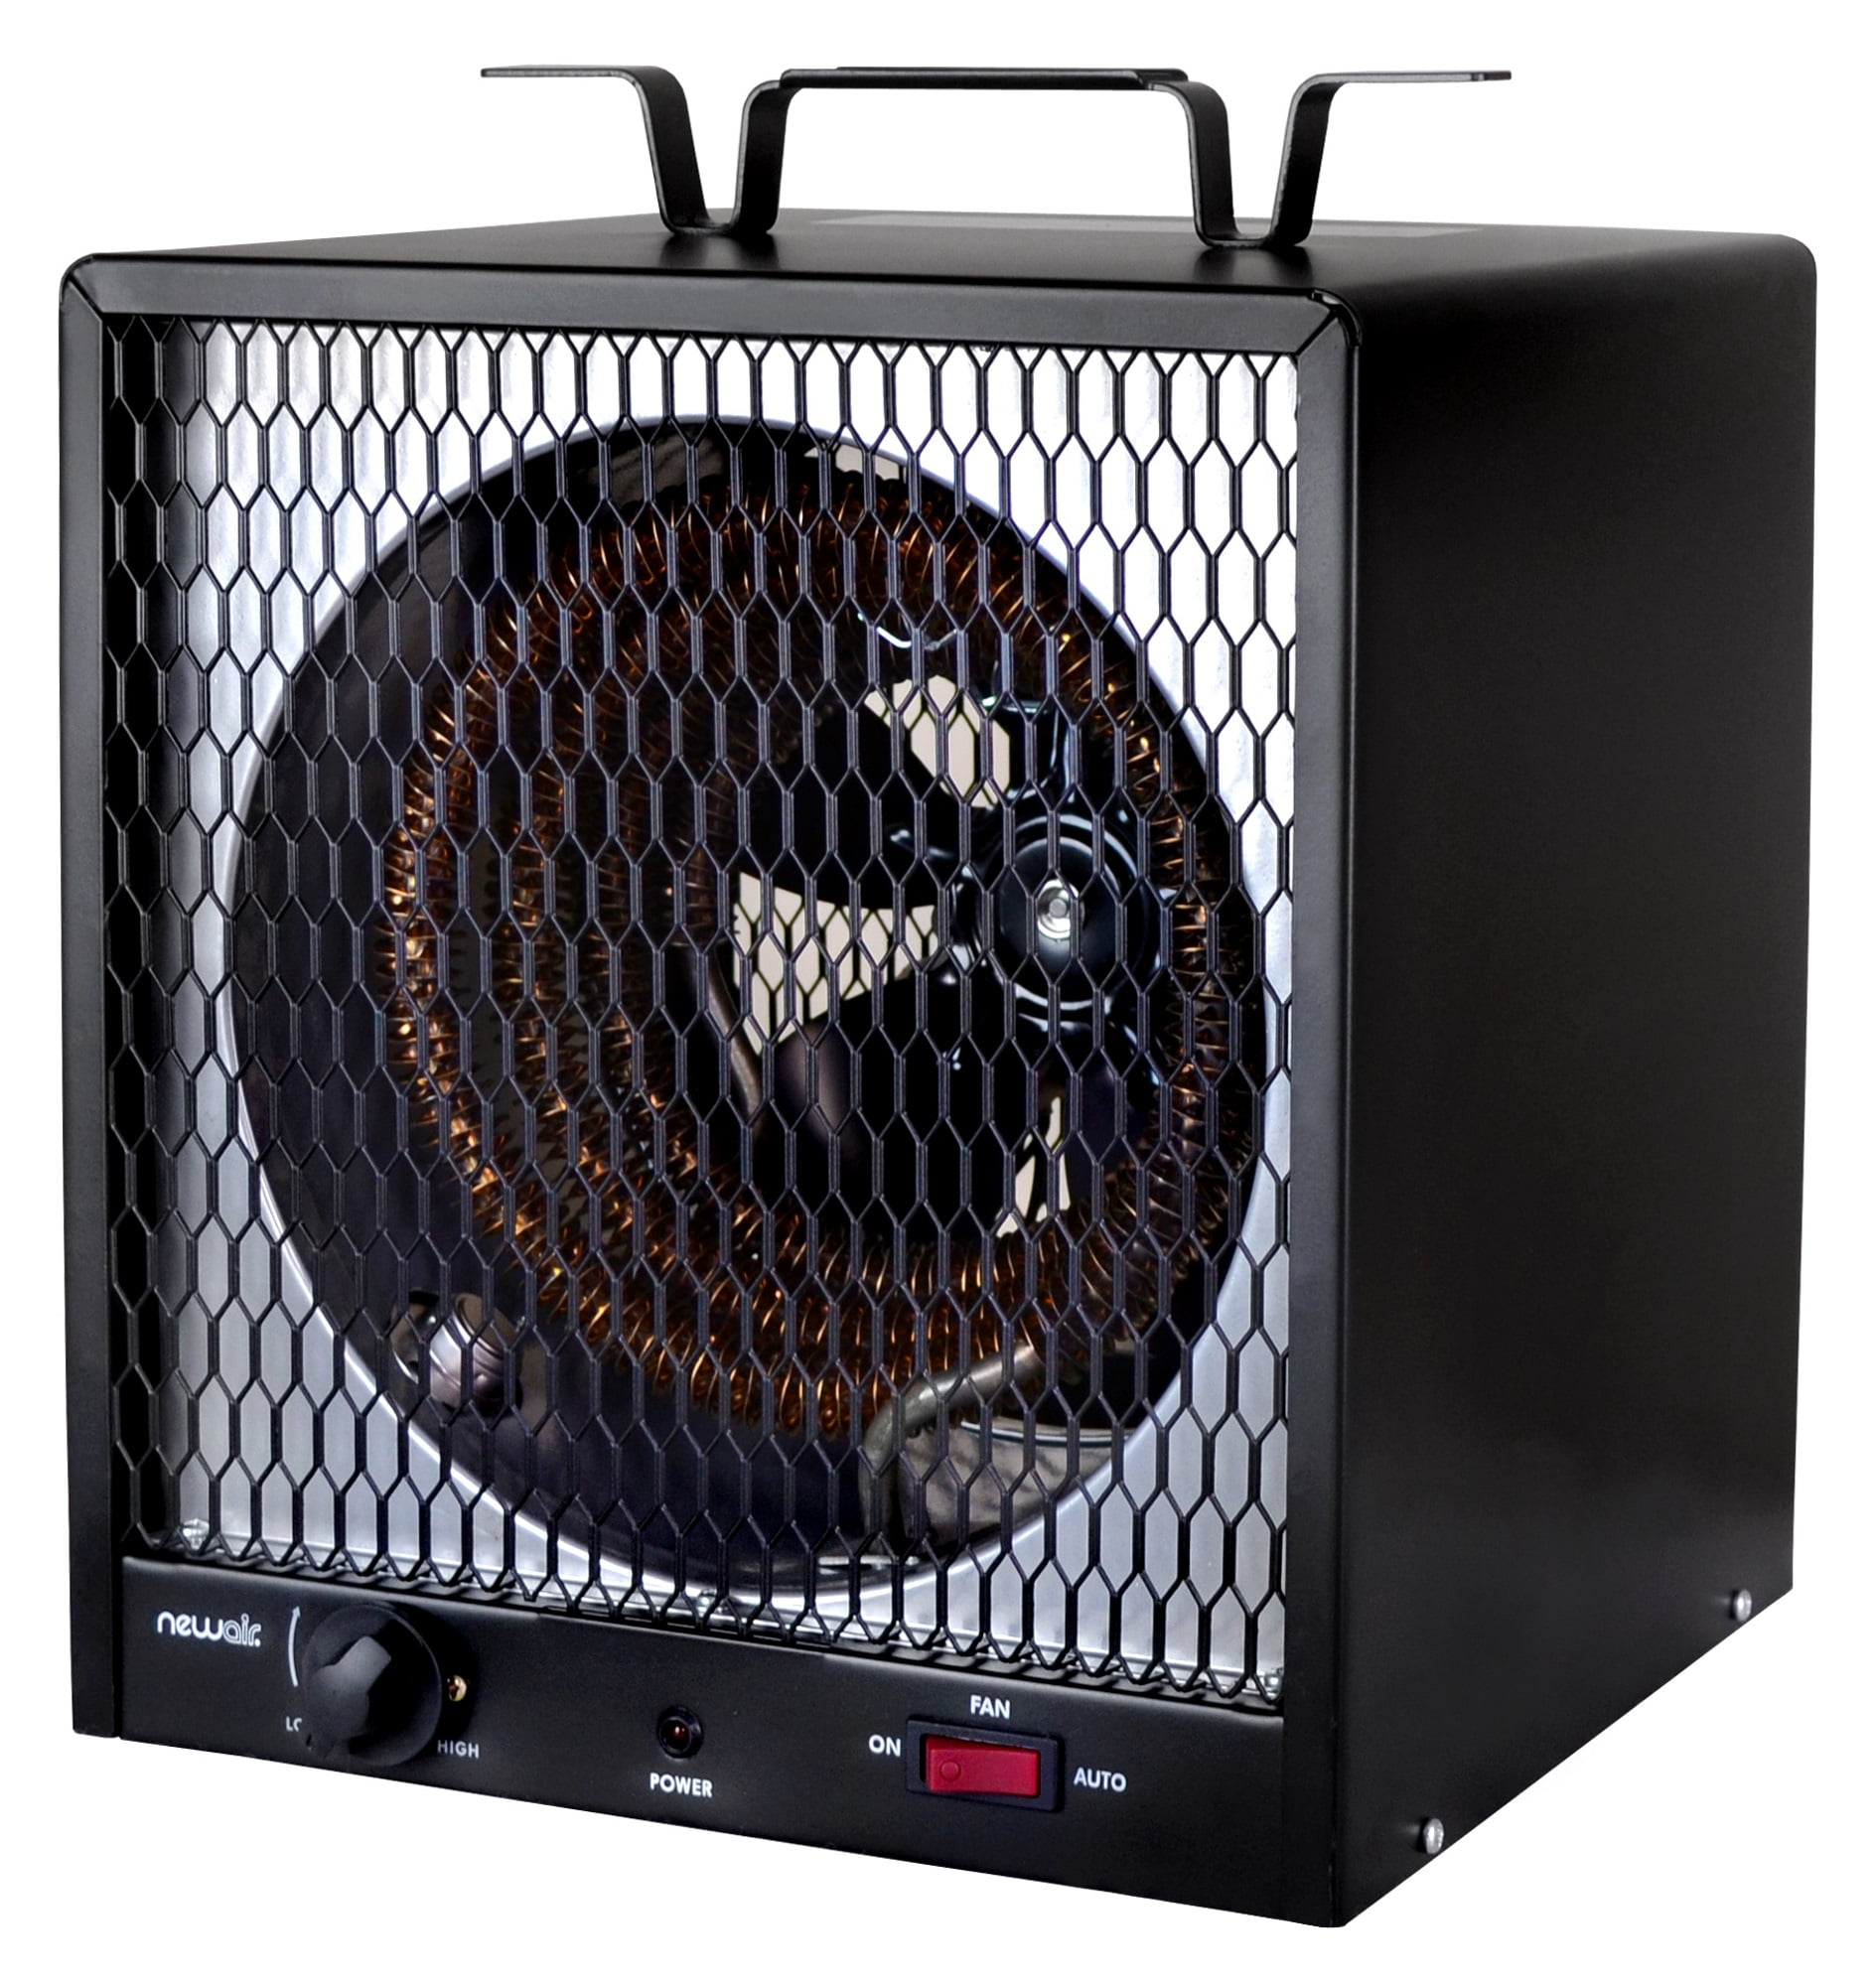 NewAir G56 5600 Watt Garage Heater by Garage Heaters